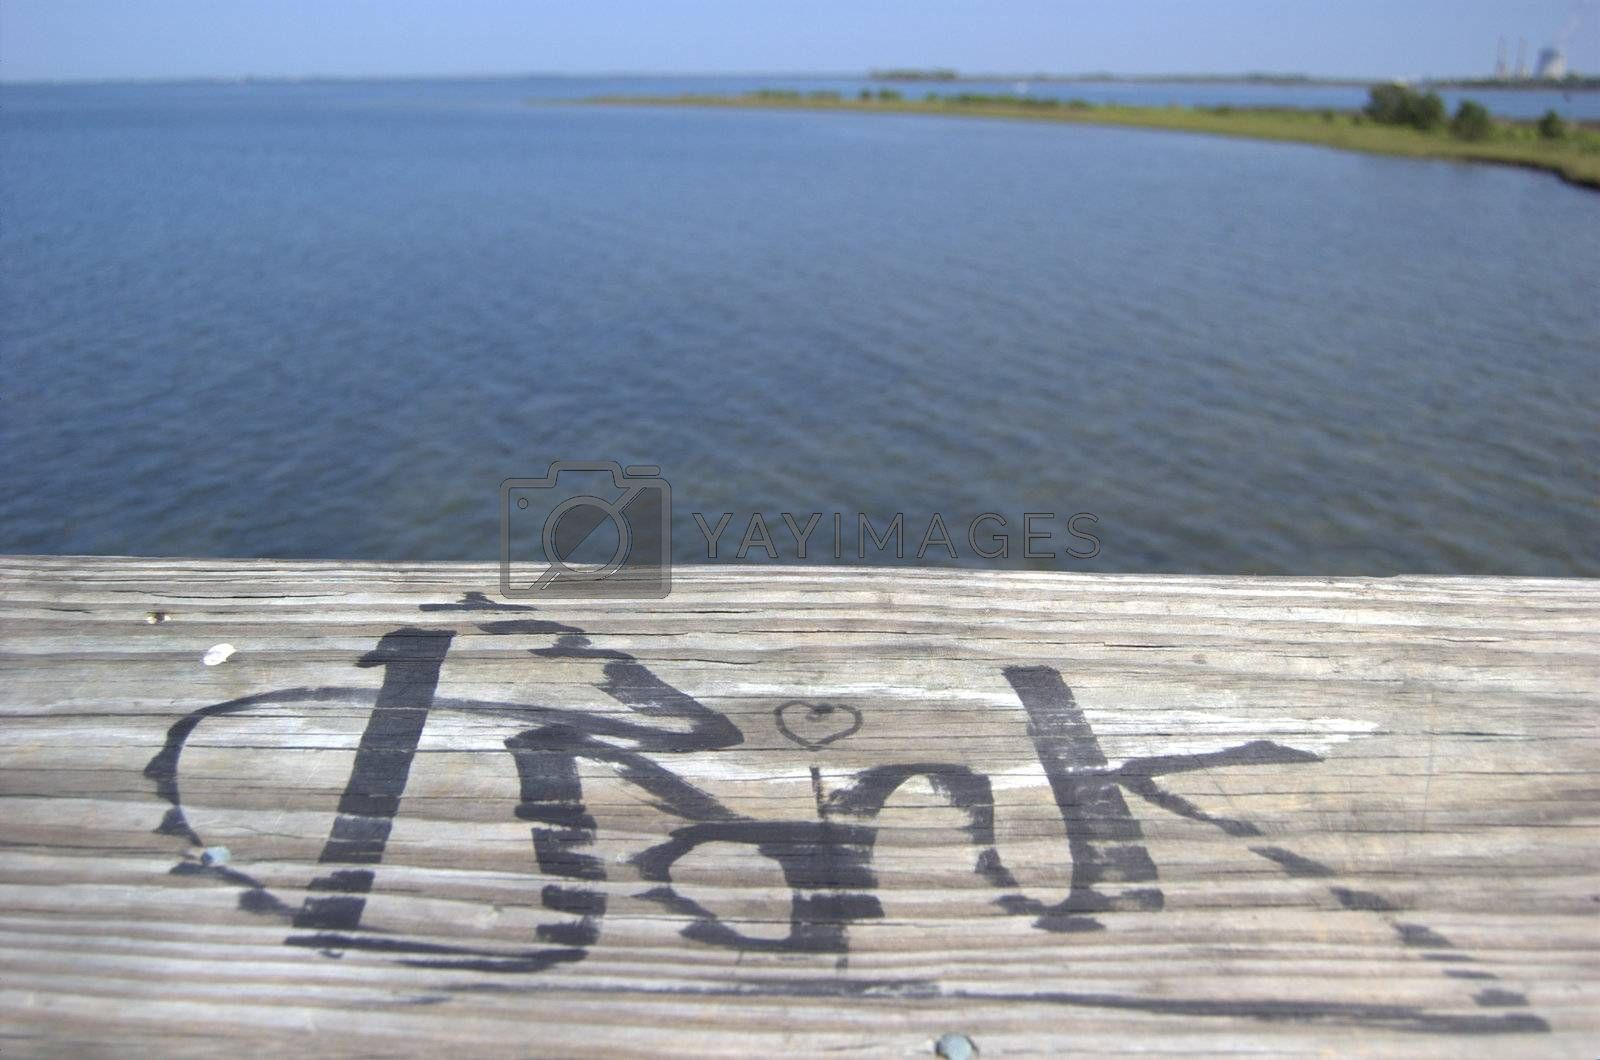 Graffiti on wood boardwalk on the ocean